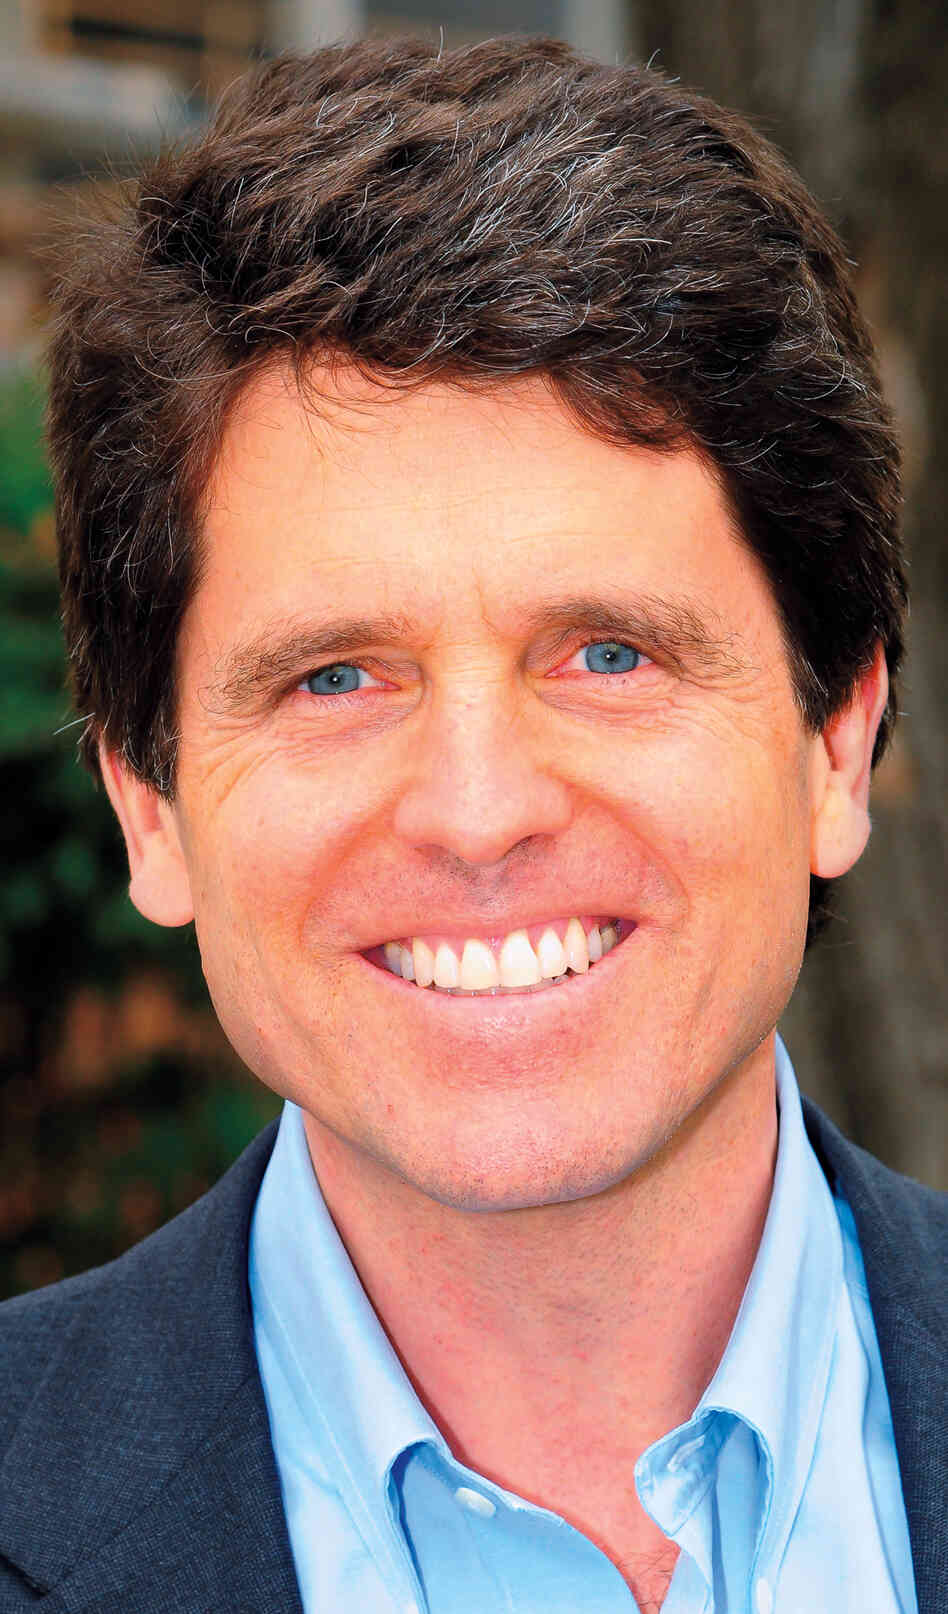 Mark Shriver says his father, Sargent, managed to balance doing great things with being a good person.